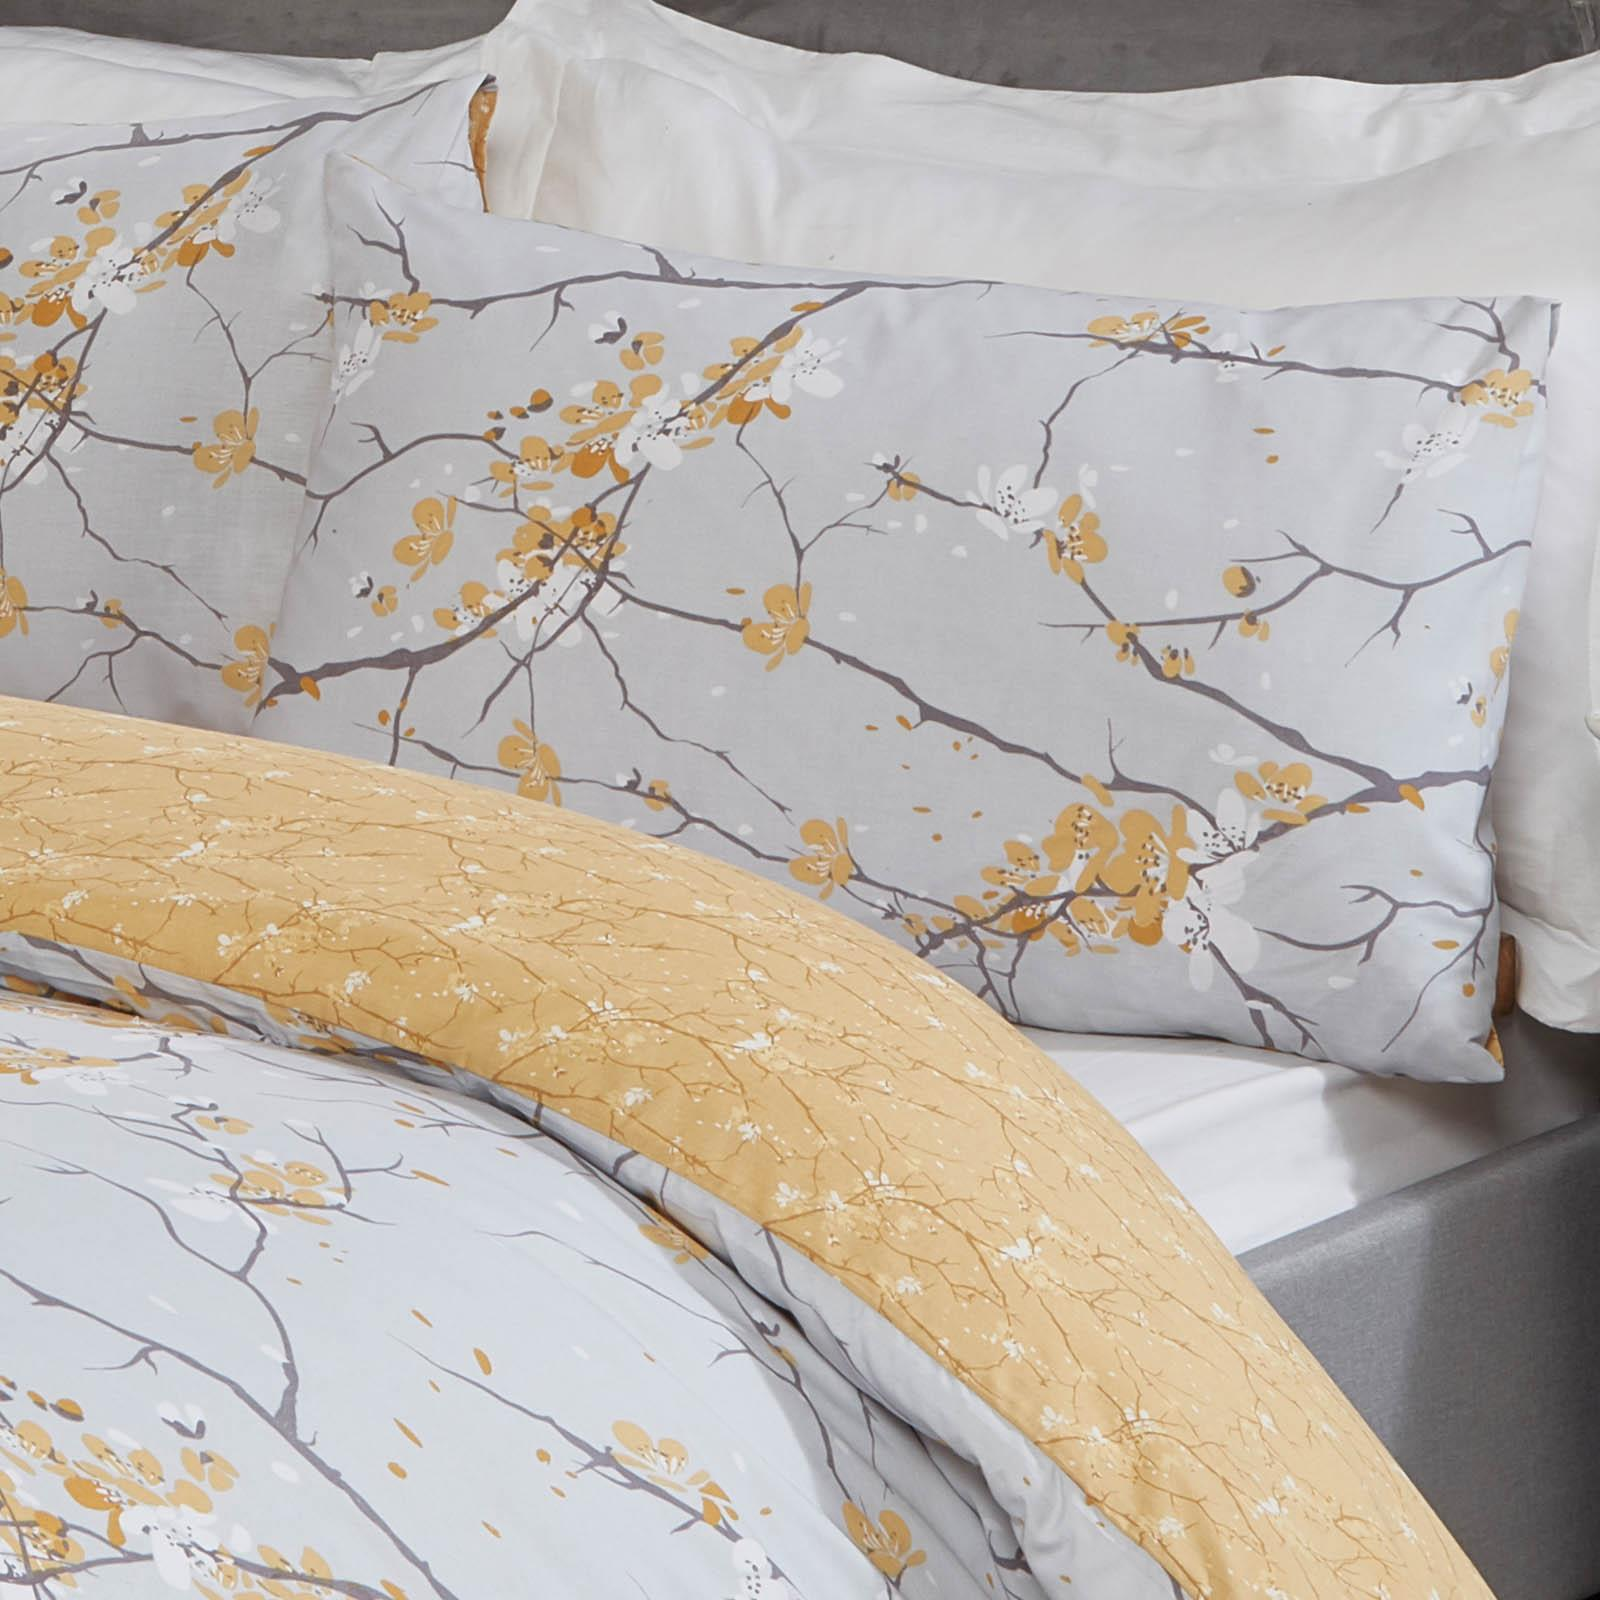 thumbnail 24 - Dreamscene Spring Blossoms Duvet Cover with Pillowcases Bedding Set Blush Ochre